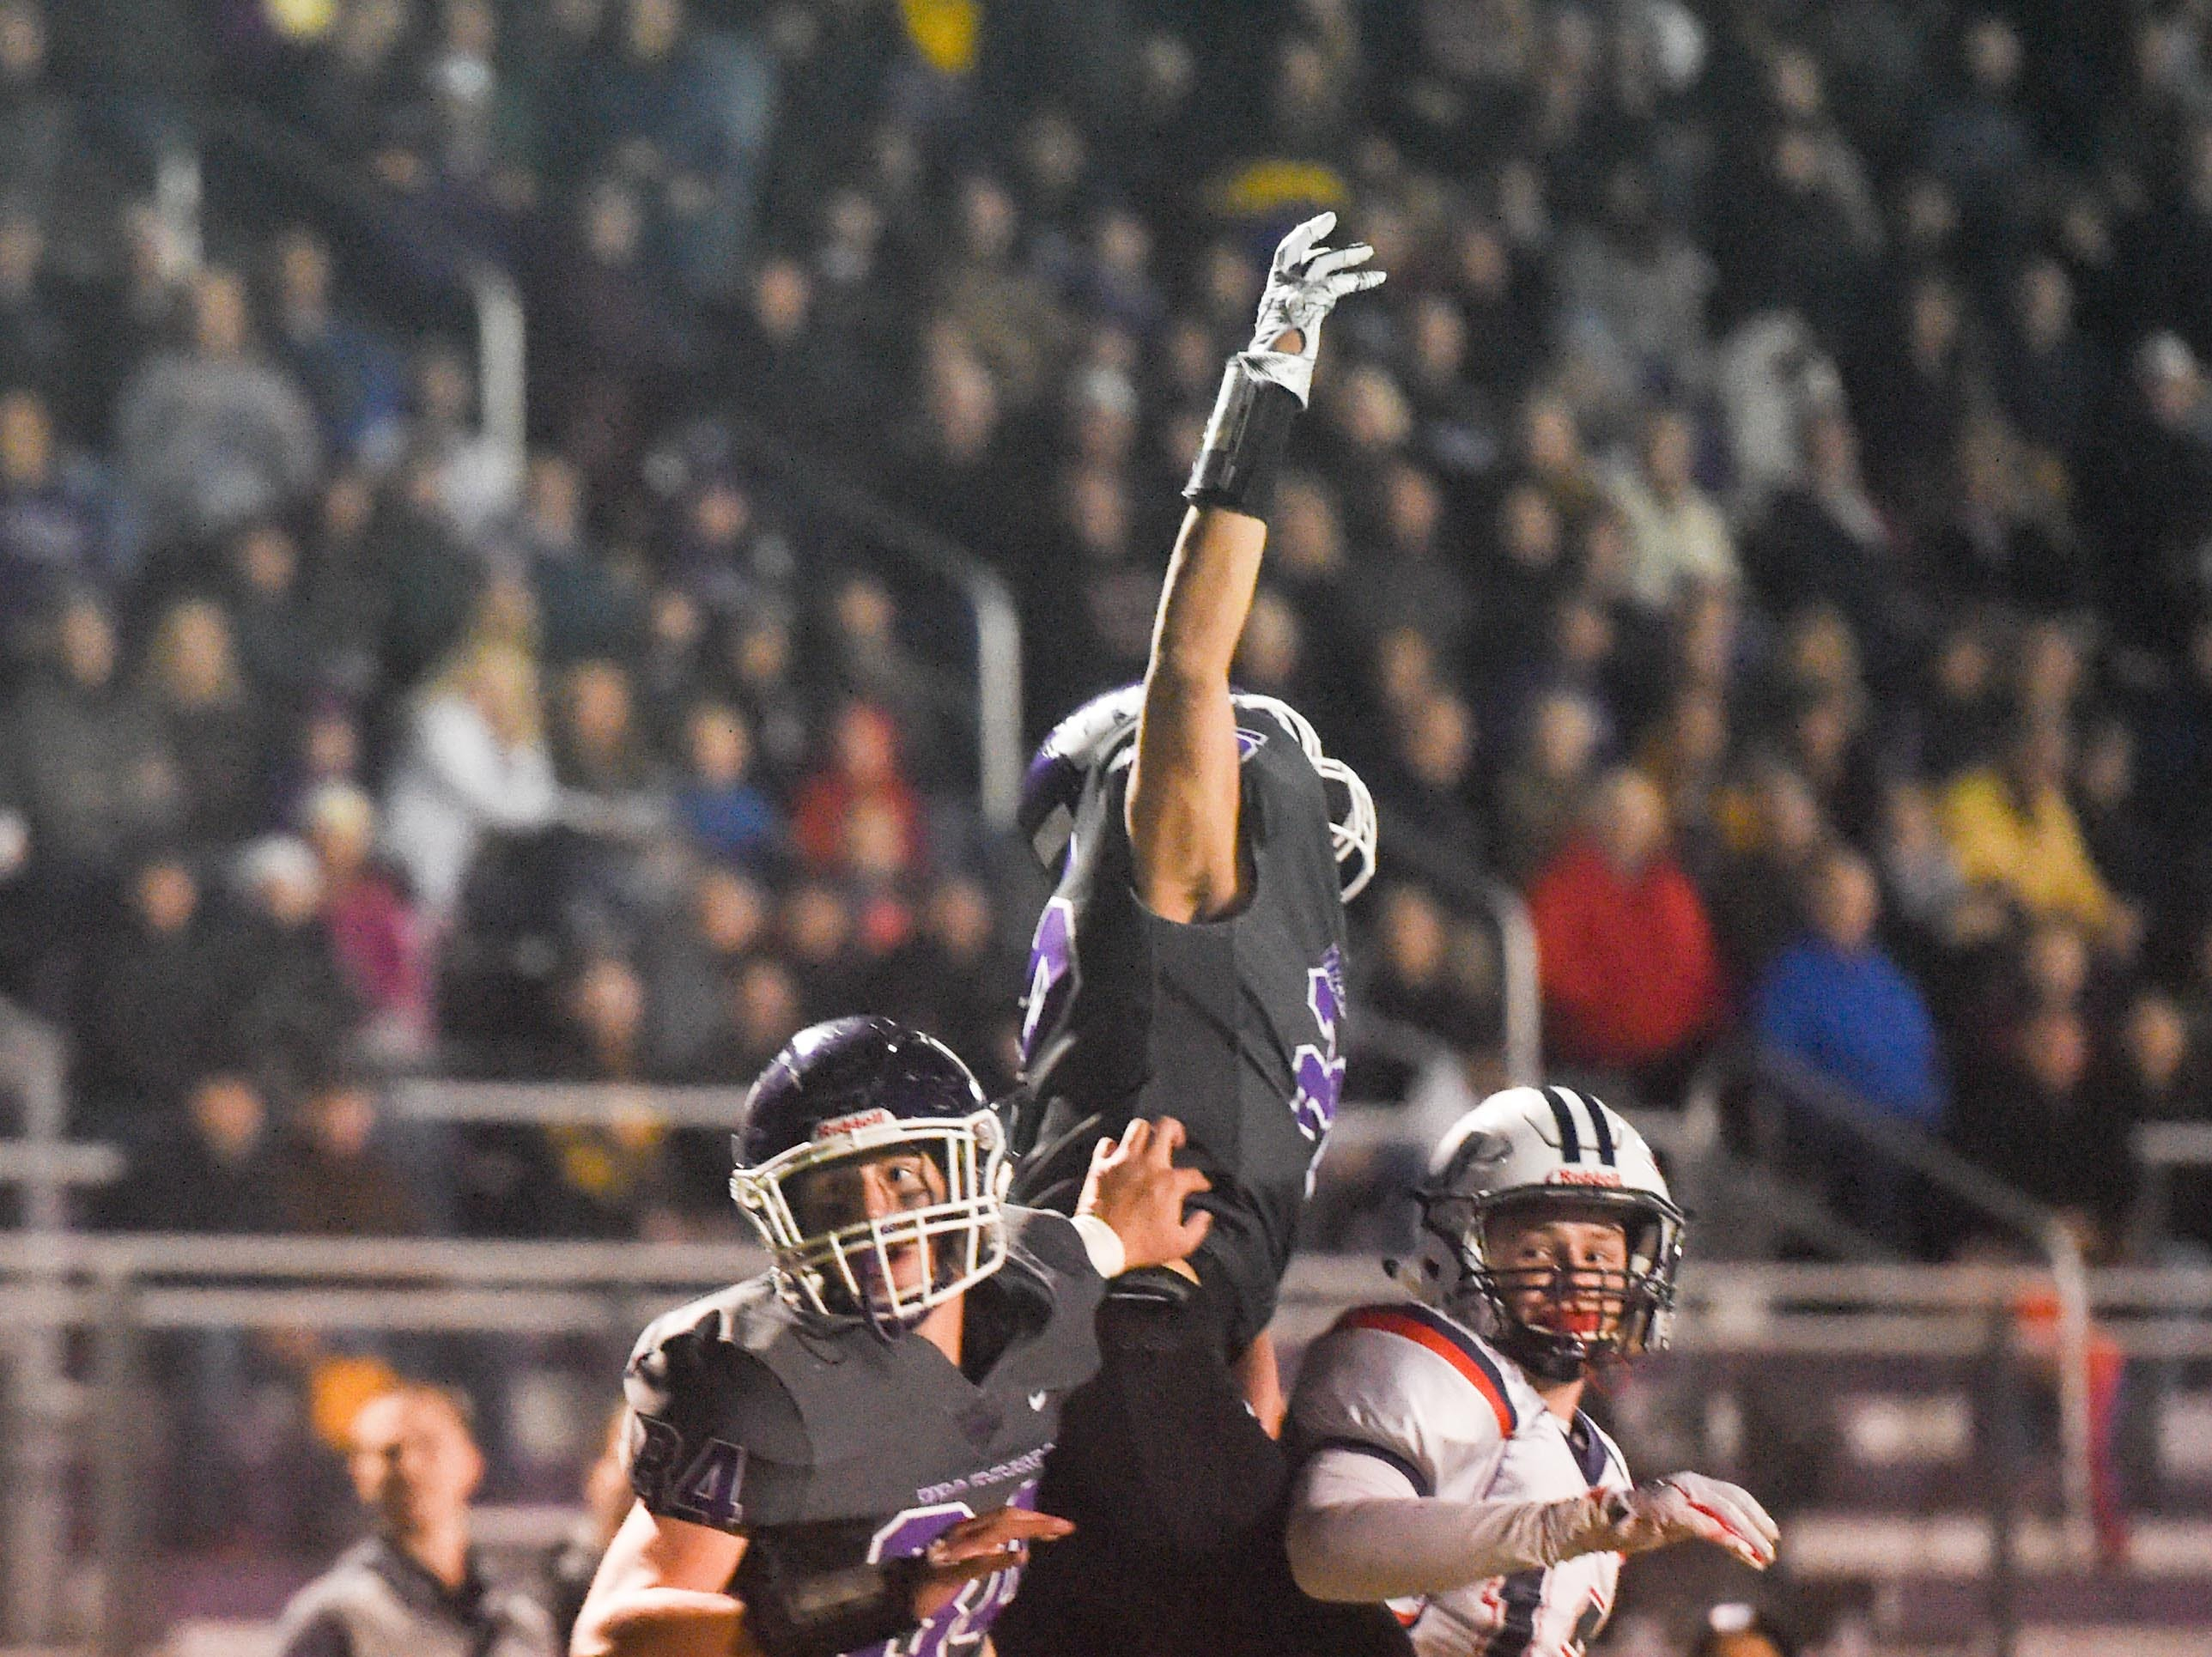 Urbandale and Waukee players watch as a pass goes deep into the endzone on Friday, Oct. 26, 2018 during a playoff game between the Waukee Warriors and the Urbandale J-Hawks at Waukee High School.